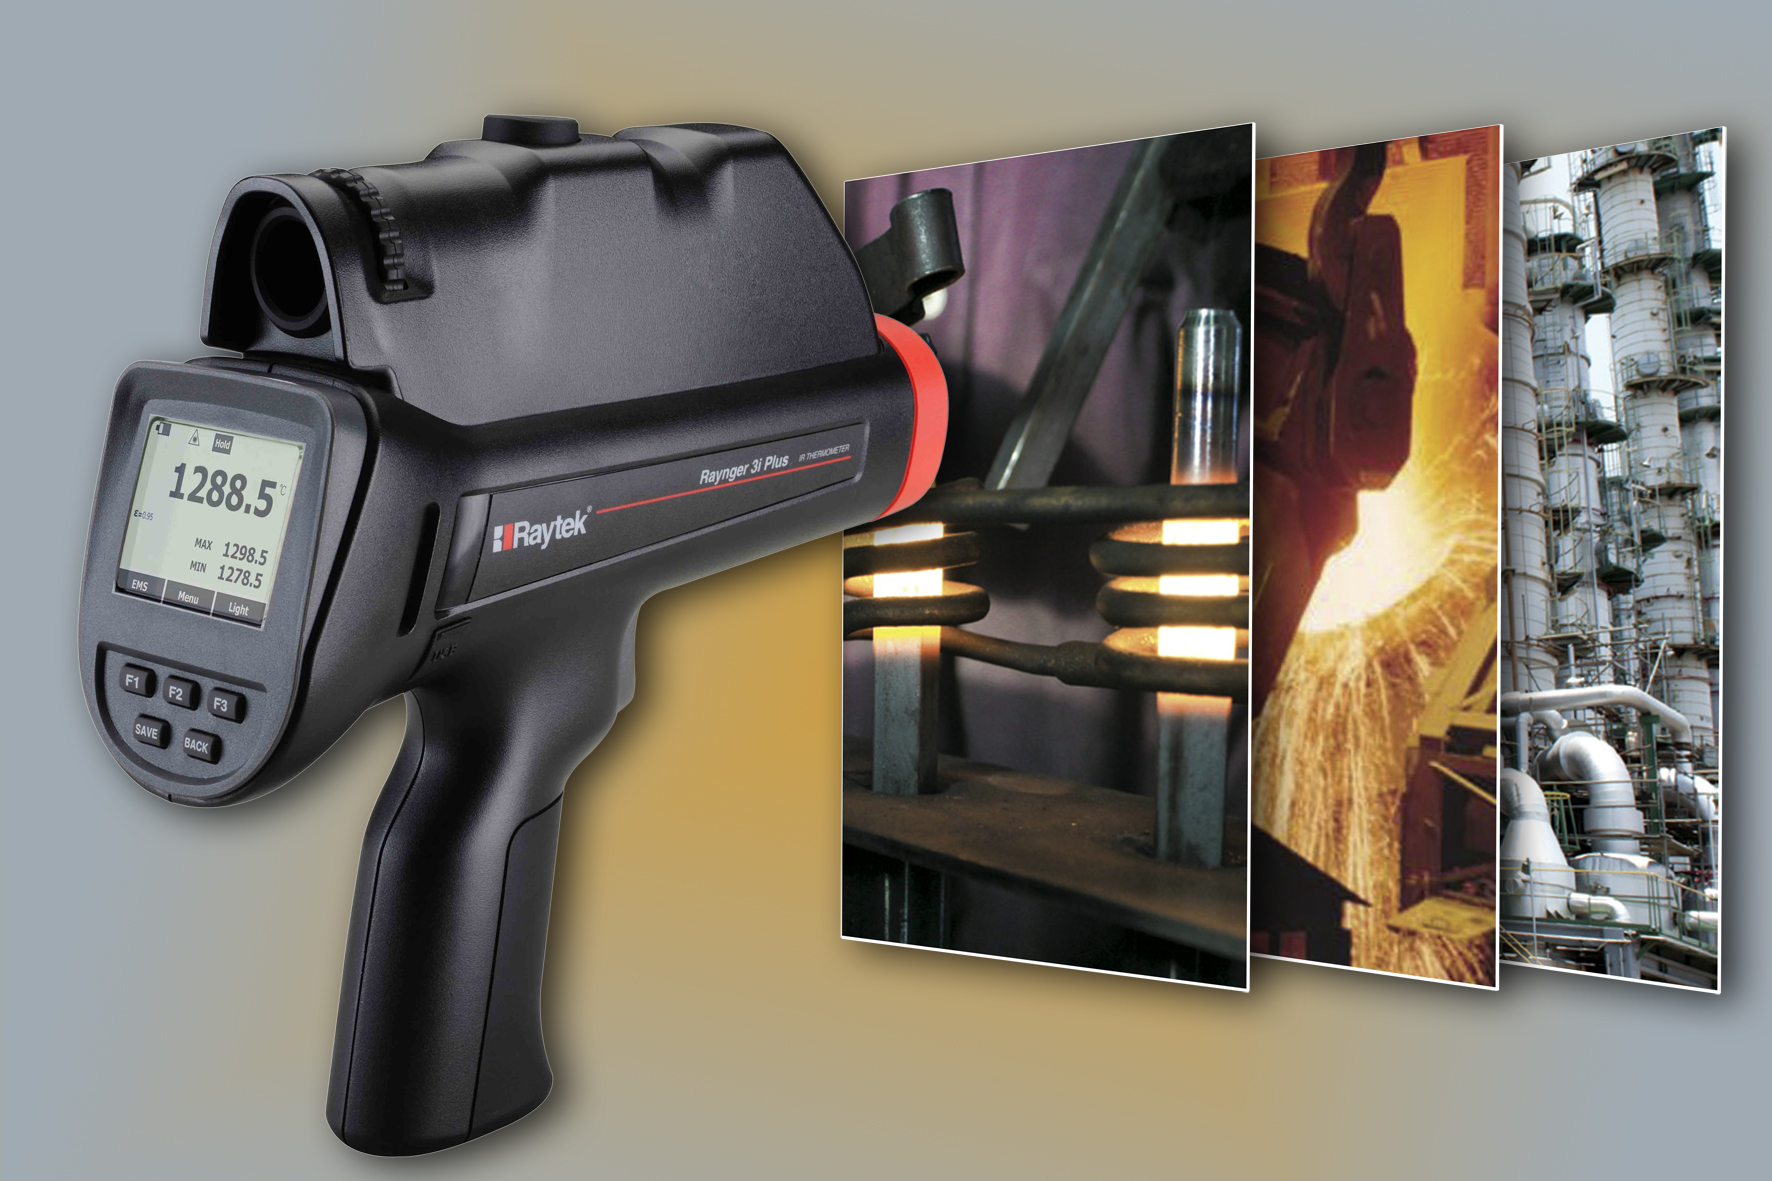 Handheld Infrared Thermometer Raynger 174 3i Plus For High